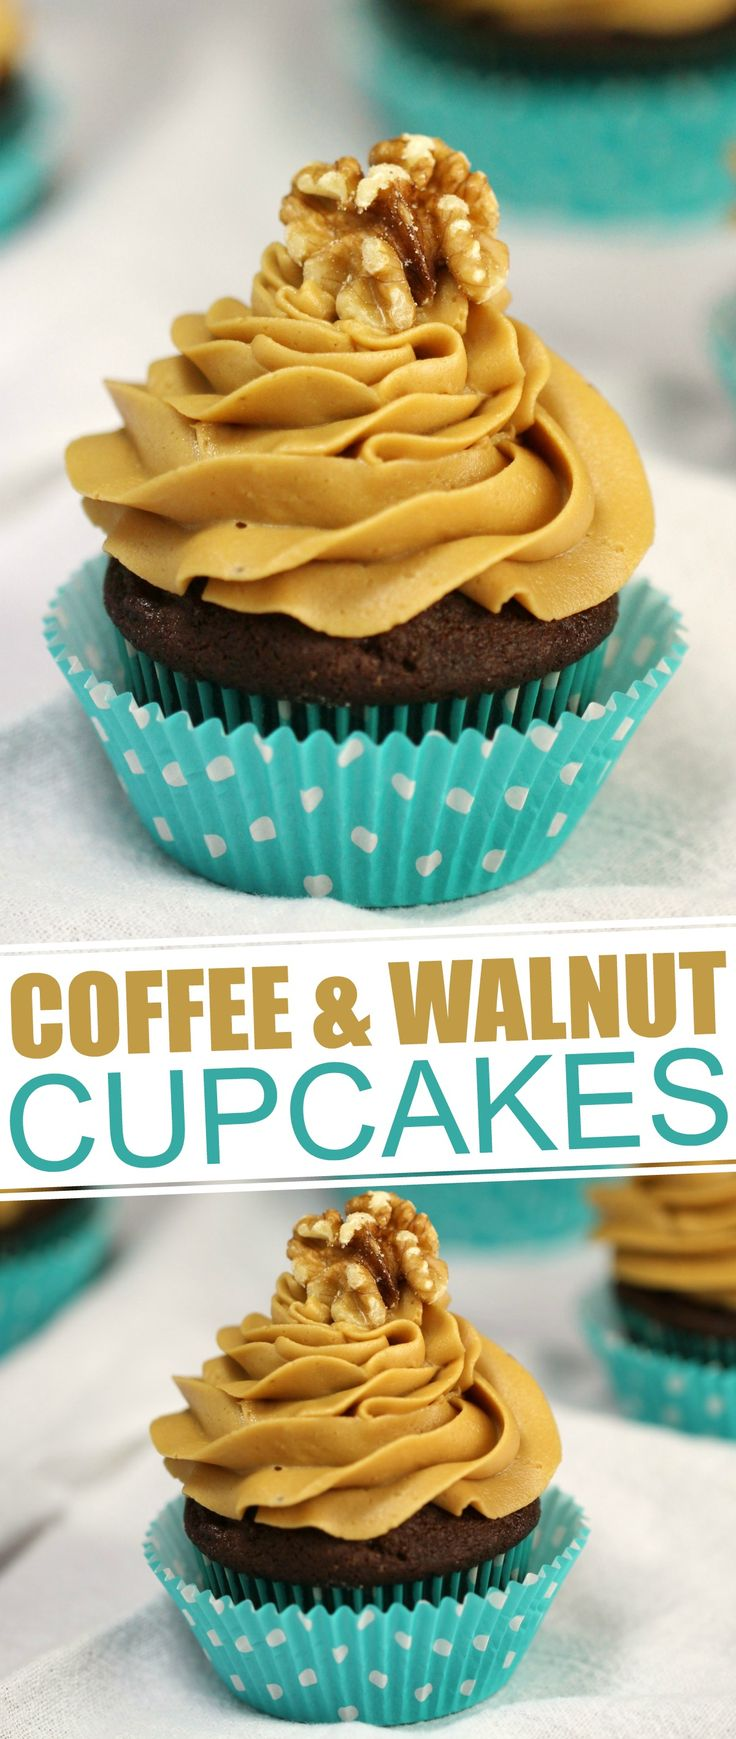 Chocolate Coffee and Walnut Cupcakes have a satisfying crunch with a subtle coffee flavour.